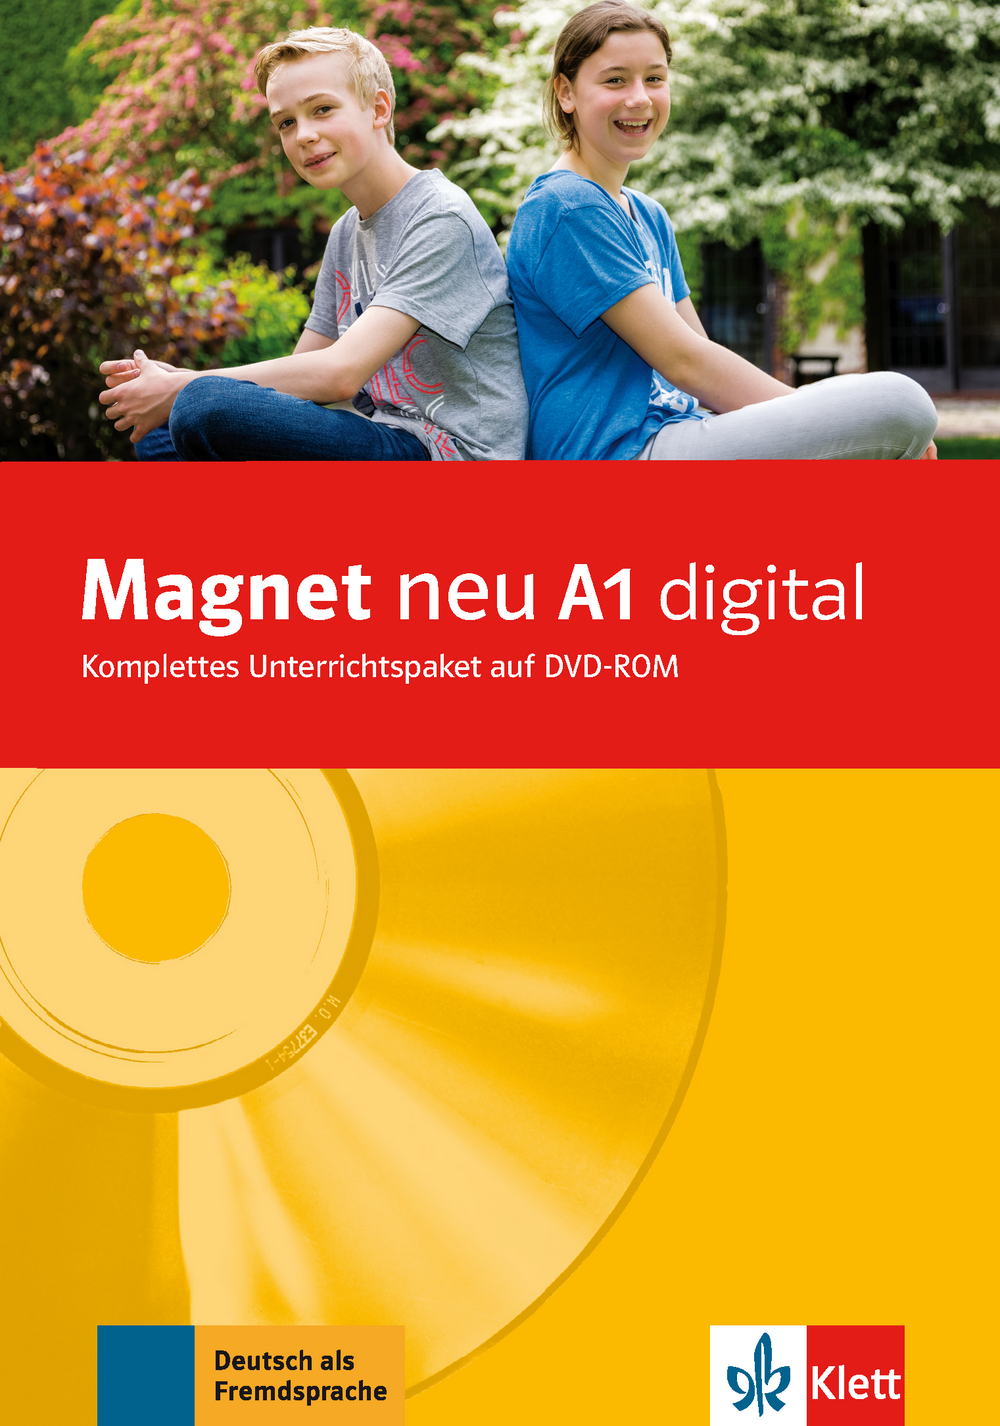 Magnet neu A1 digital